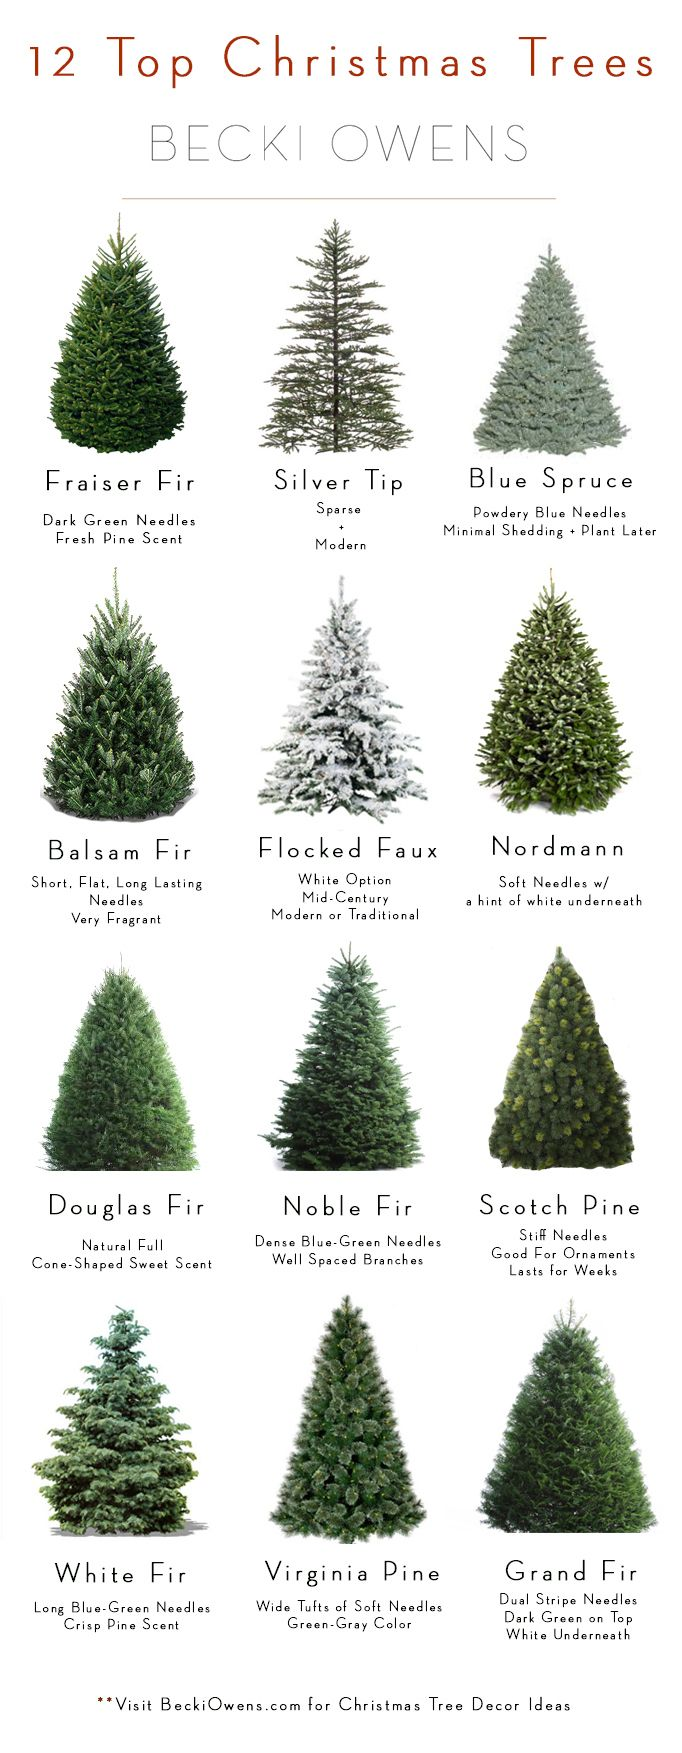 Christmas Tree Types.All About Christmas Trees Guide Decoratingbecki Owens